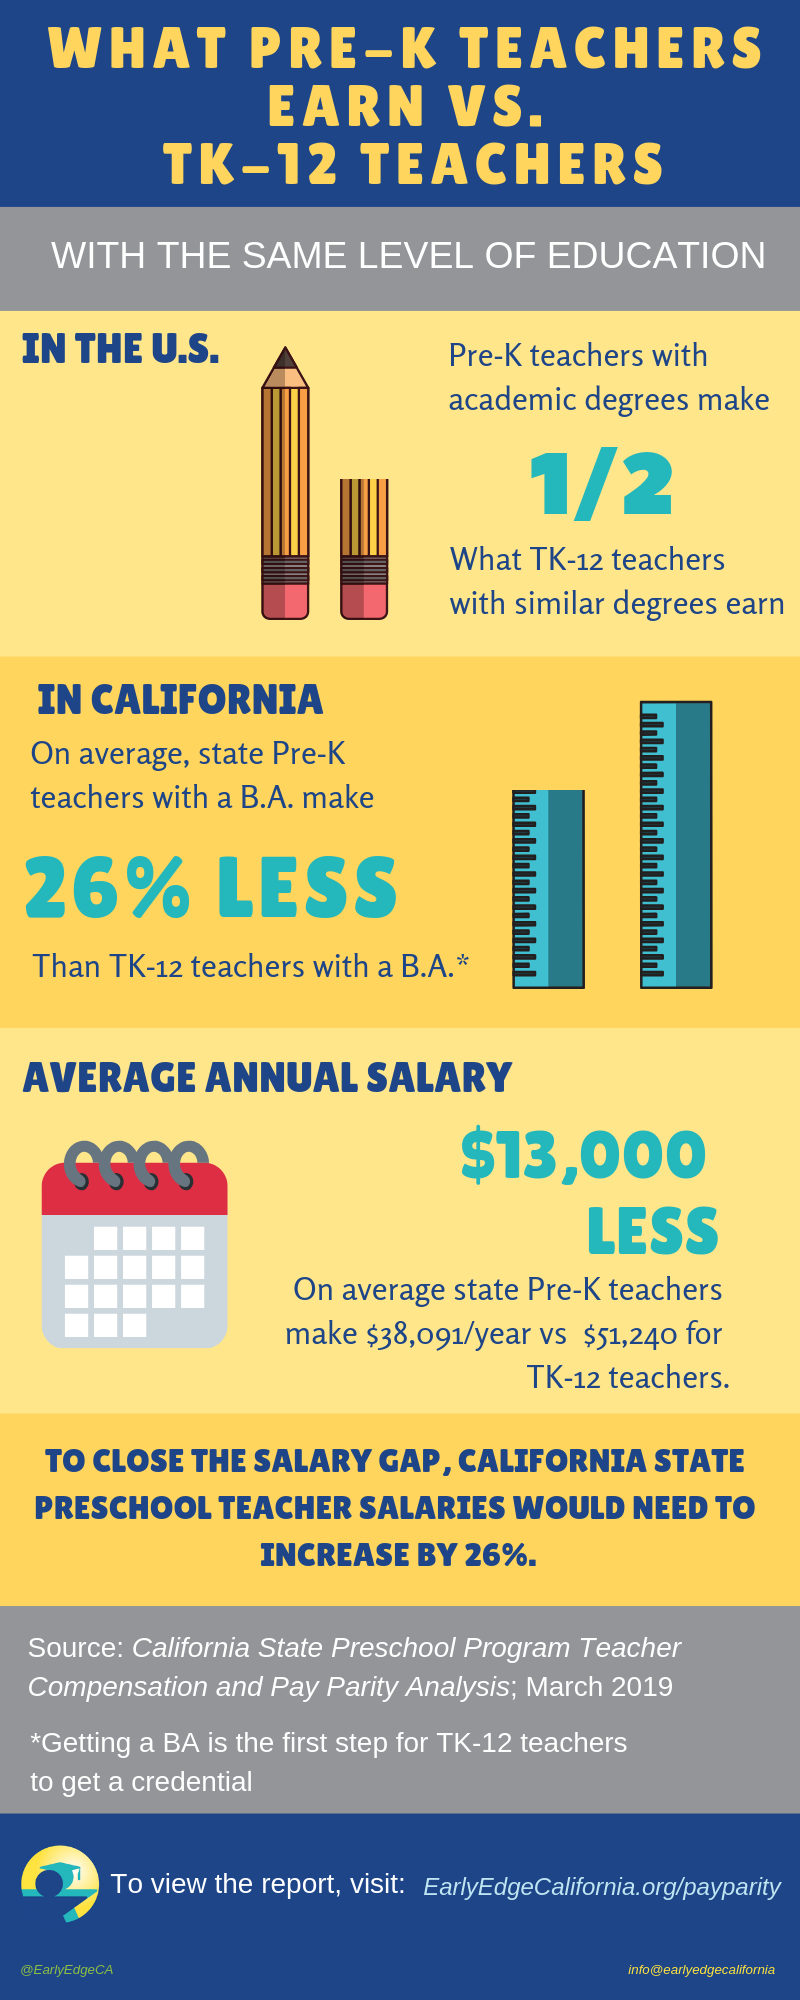 New Analysis Highlights Troubling Pay Gap Between Pre-K and